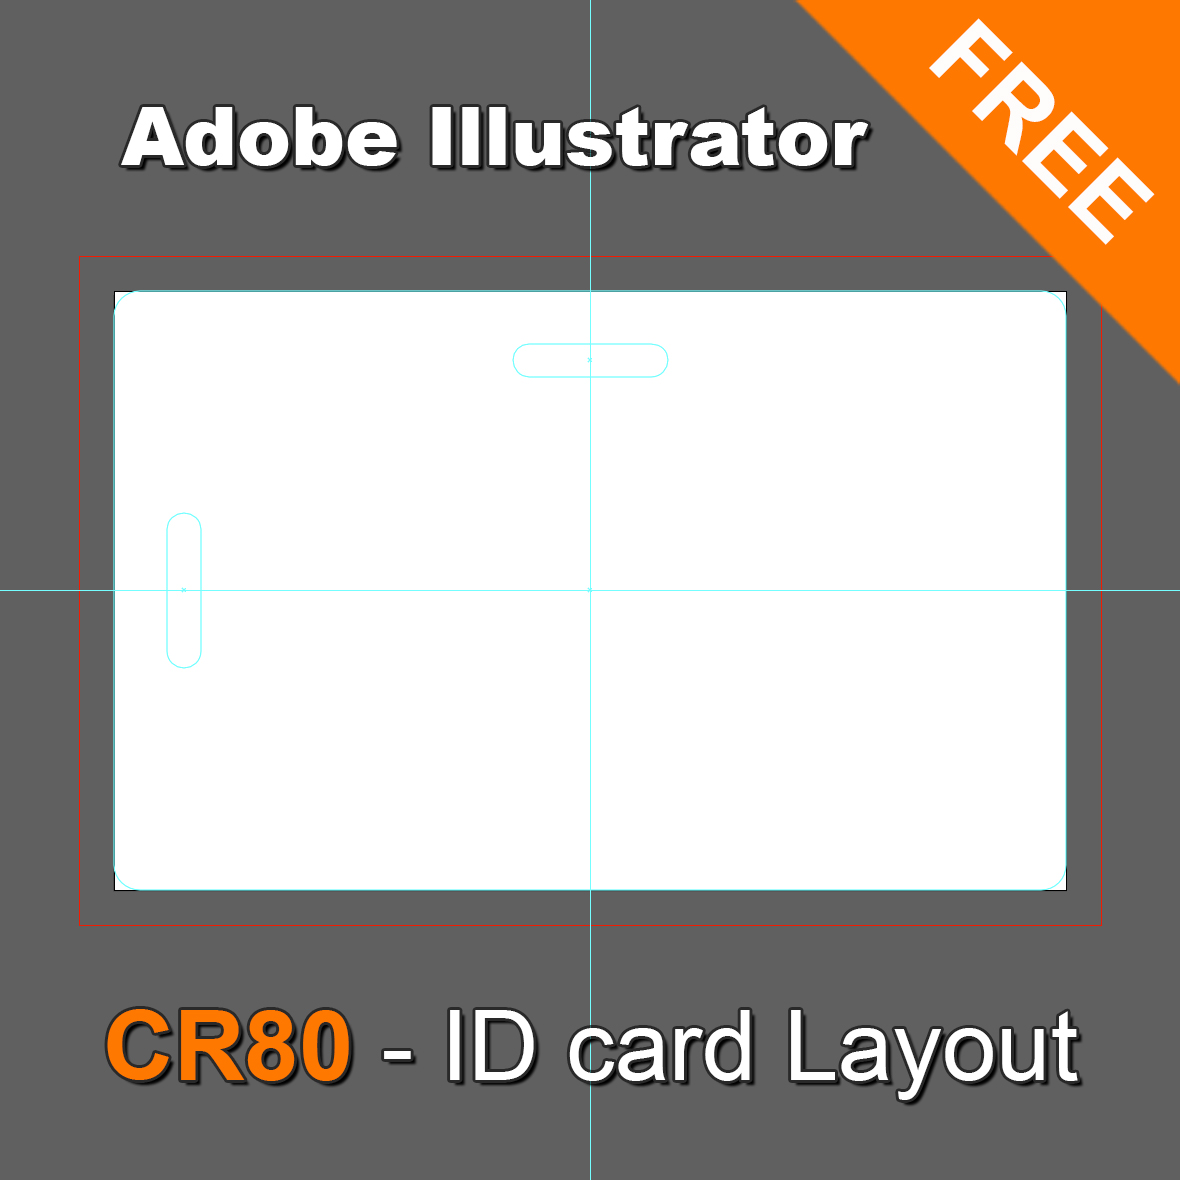 ID Card Dimensions, ID Card Sizes, ID Card Dimension information, CR80 Illustrator Layout